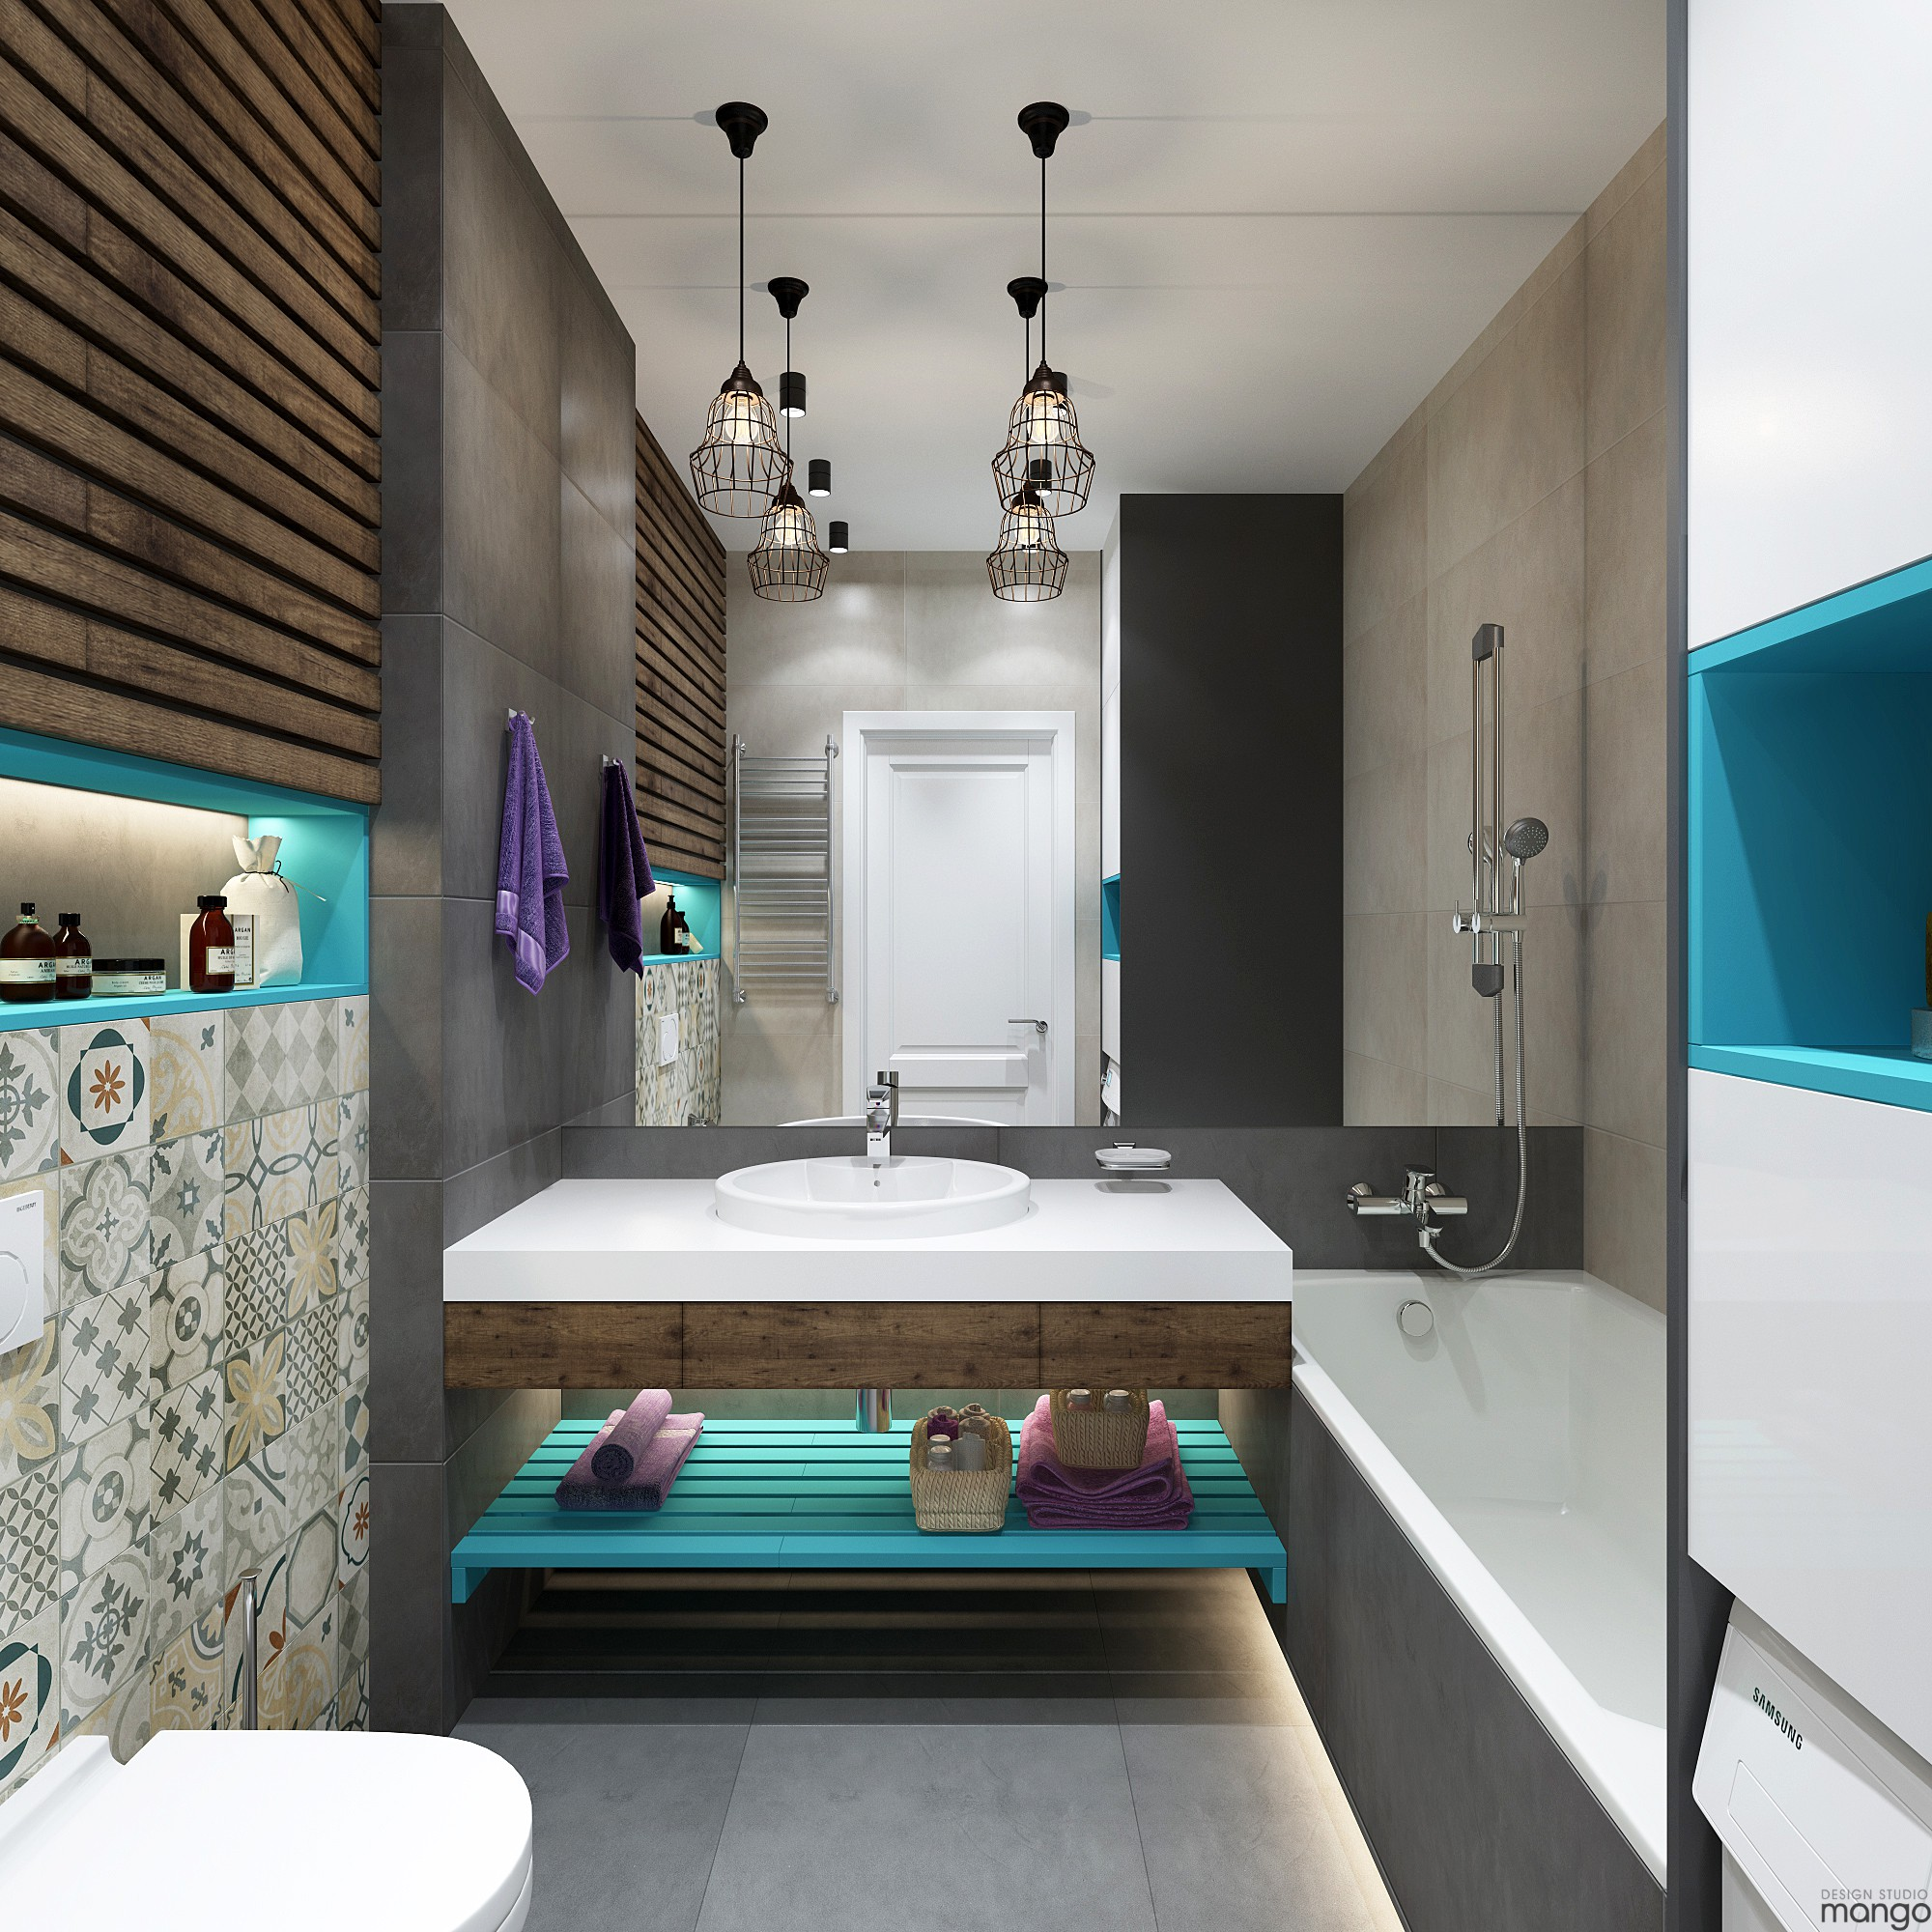 Modern Small Bathroom Designs Combined With Variety of ... on Bathroom Ideas Modern Small  id=71088